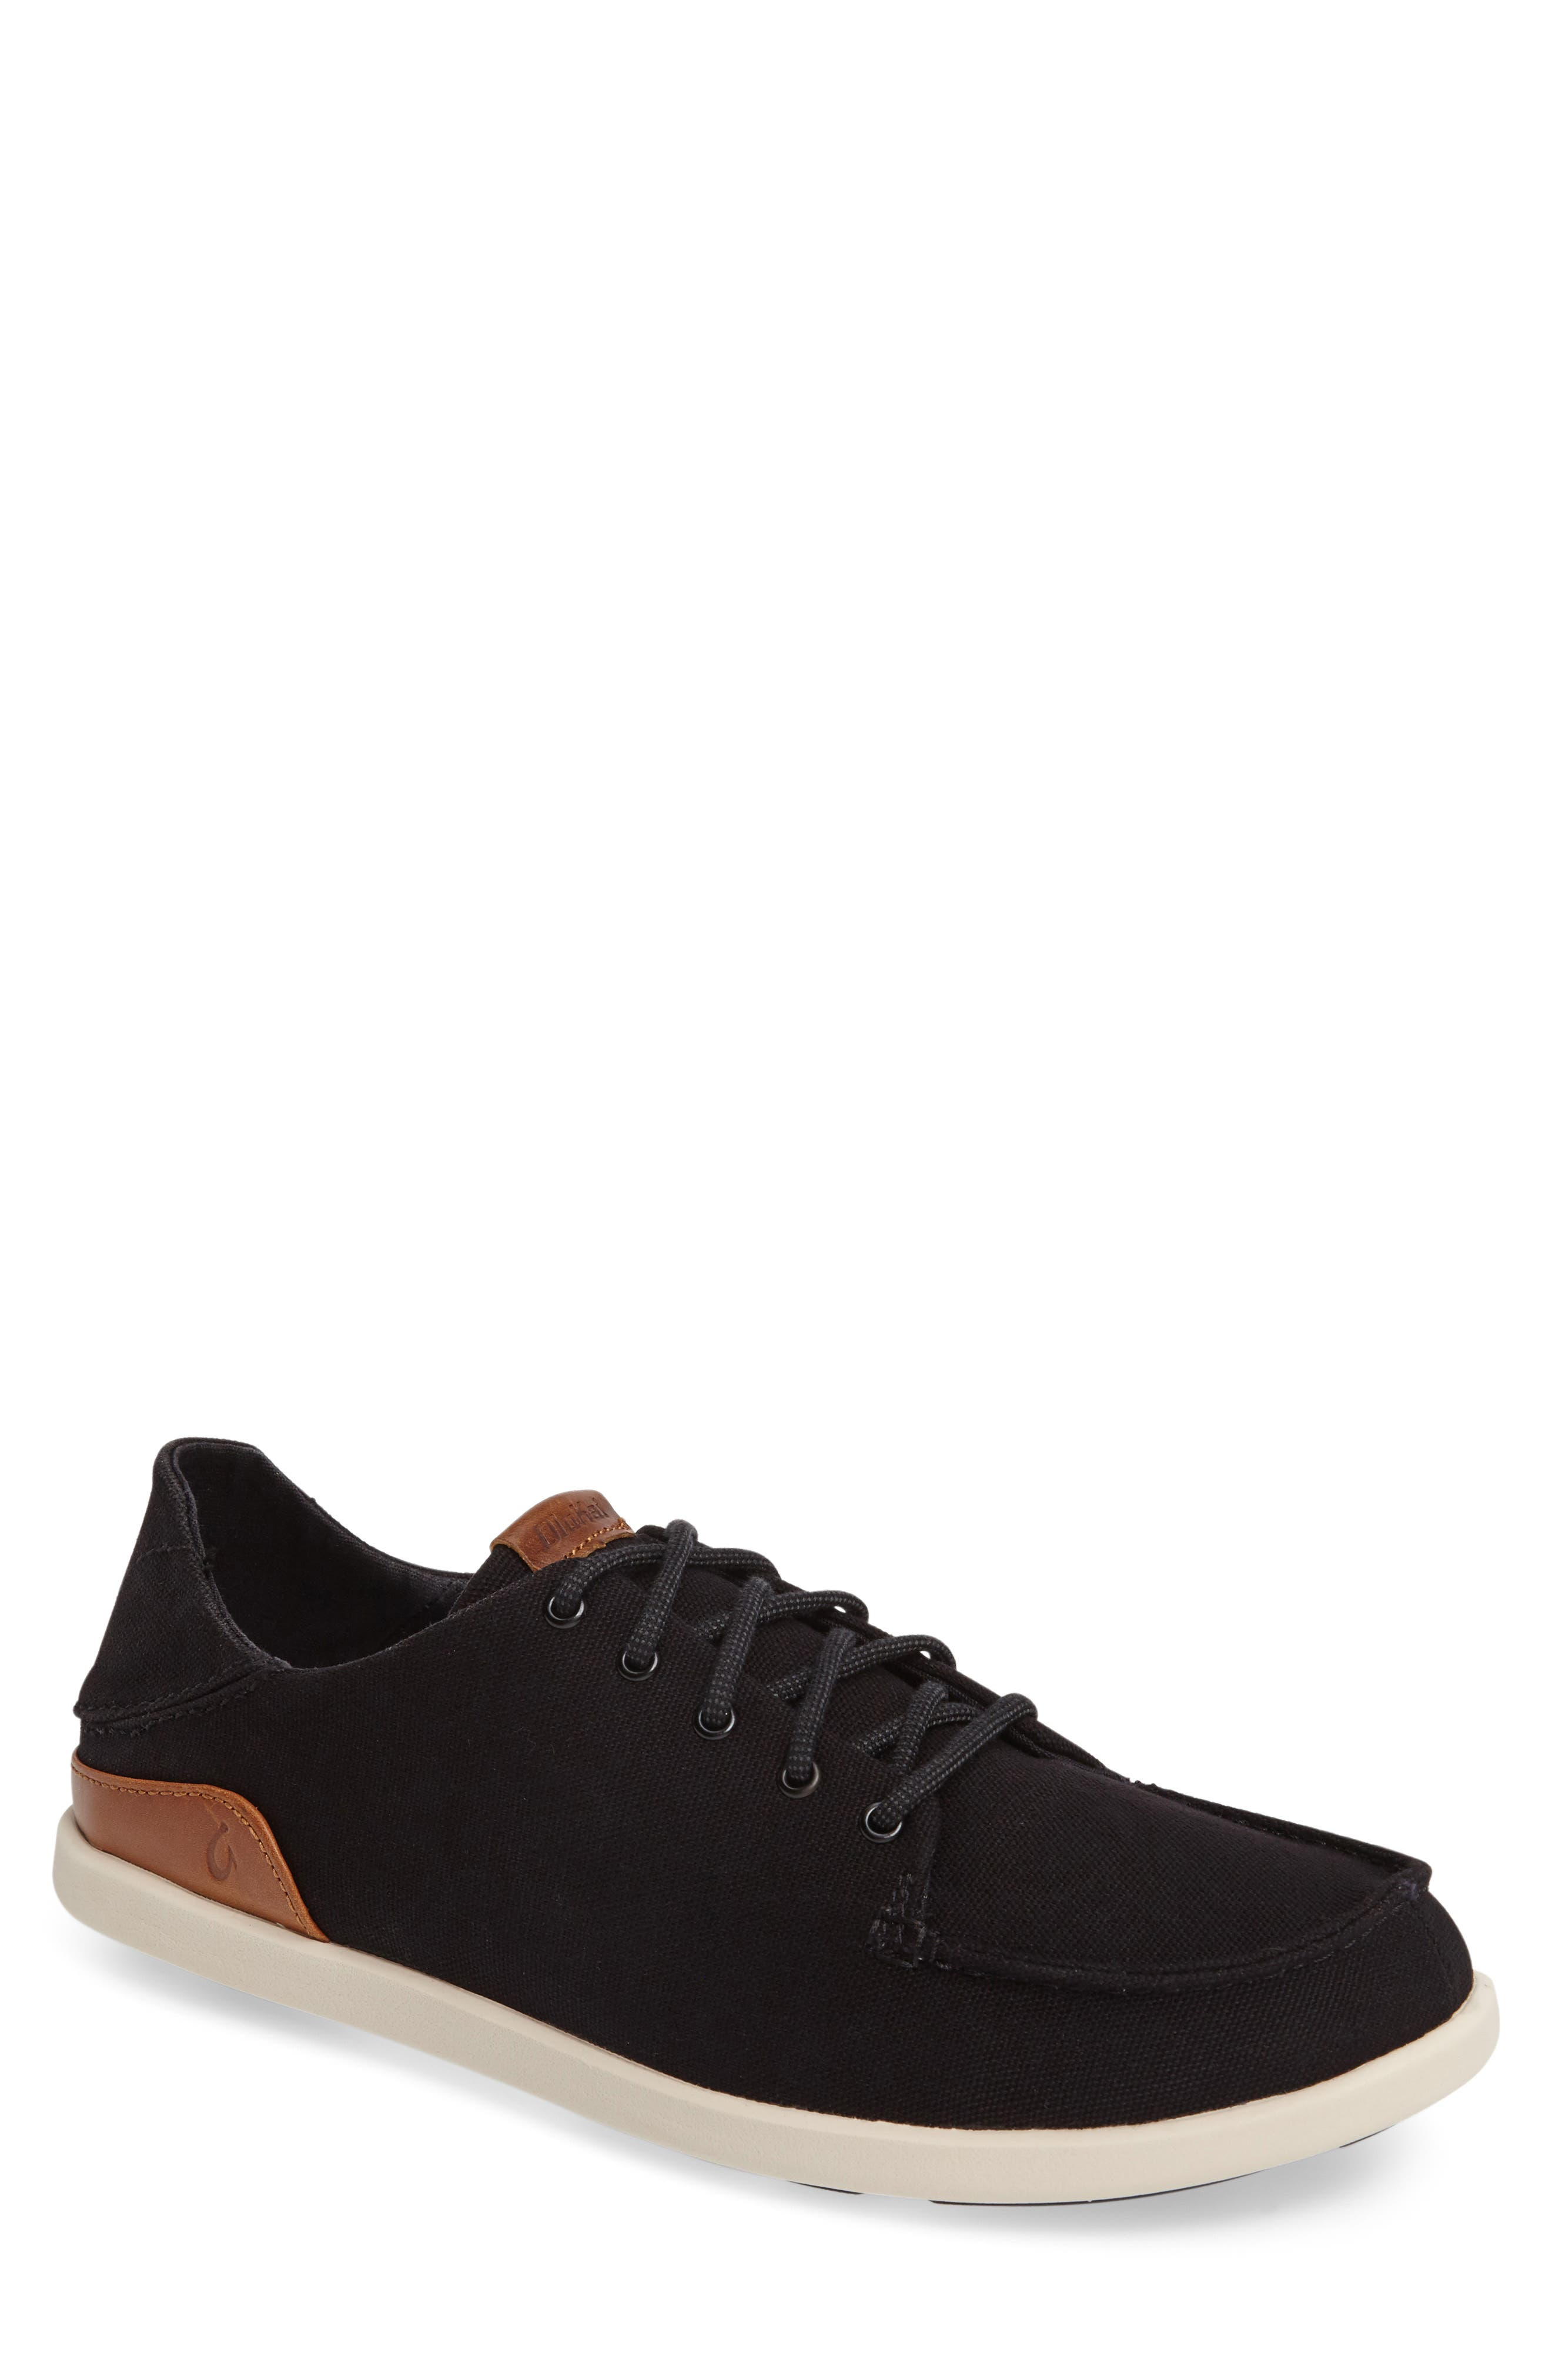 Manoa Sneaker,                             Main thumbnail 1, color,                             BLACK/ MUSTARD